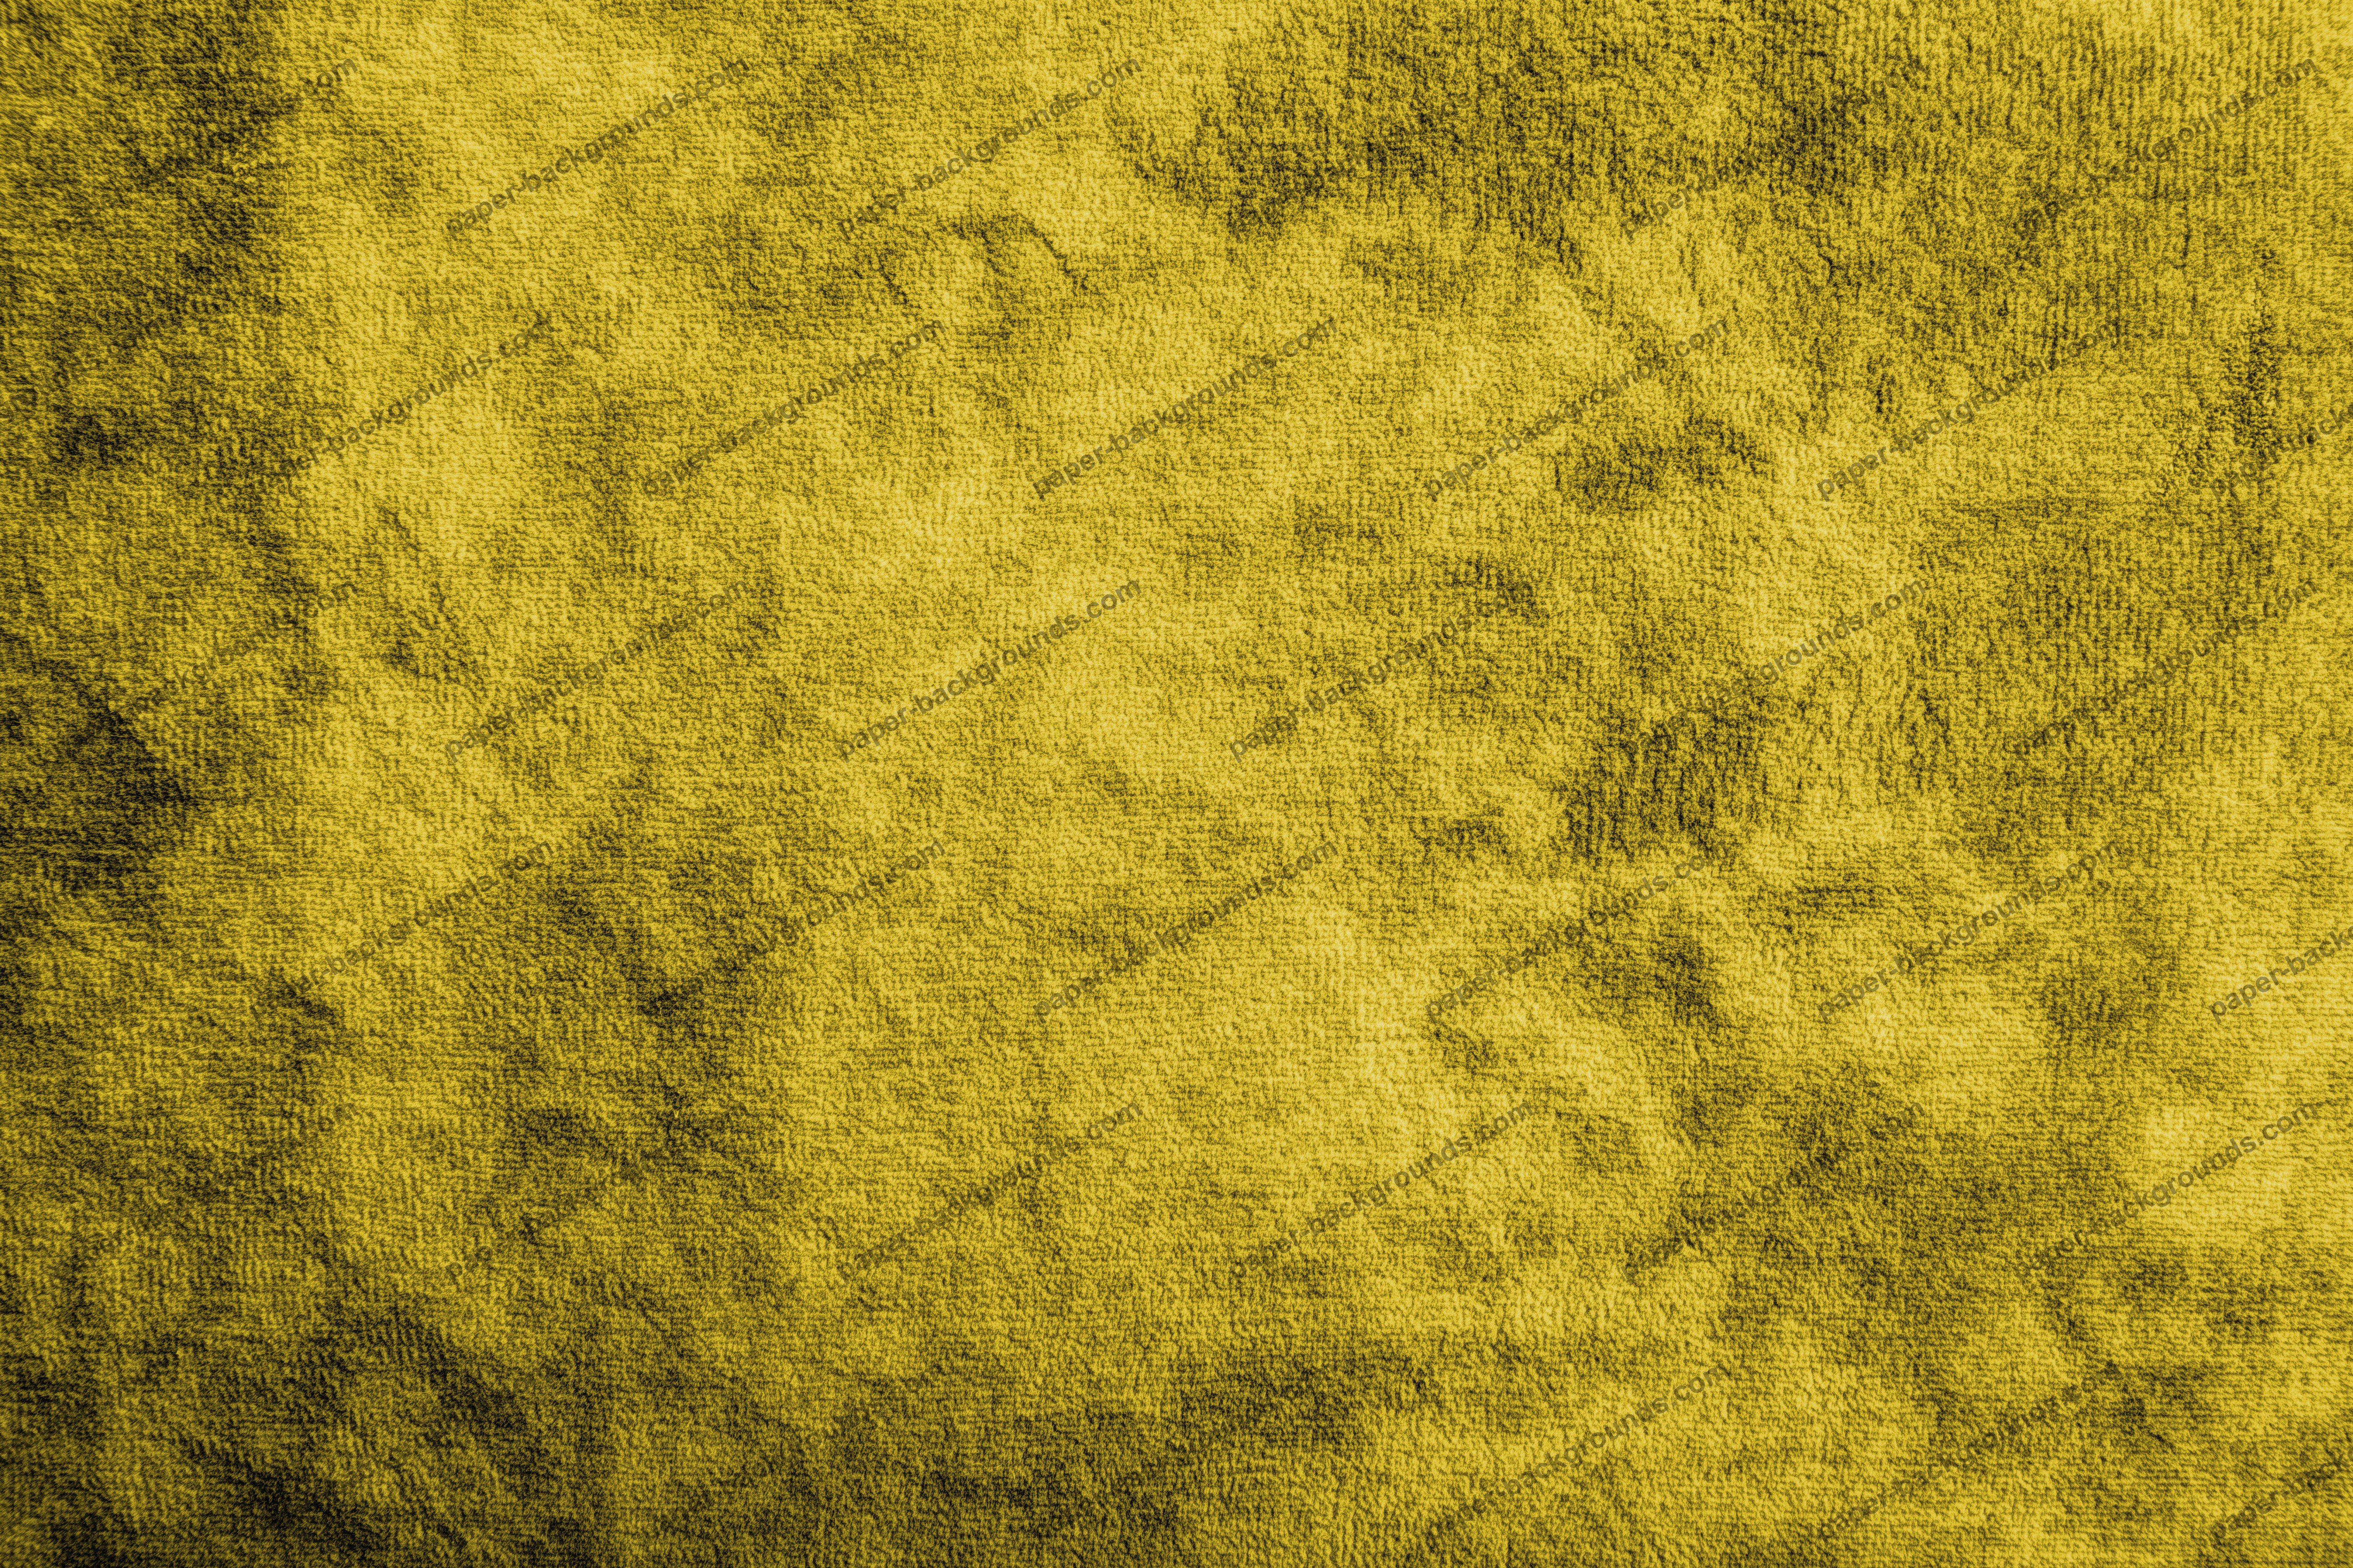 Paper Backgrounds Yellow Smooth Carpet Texture